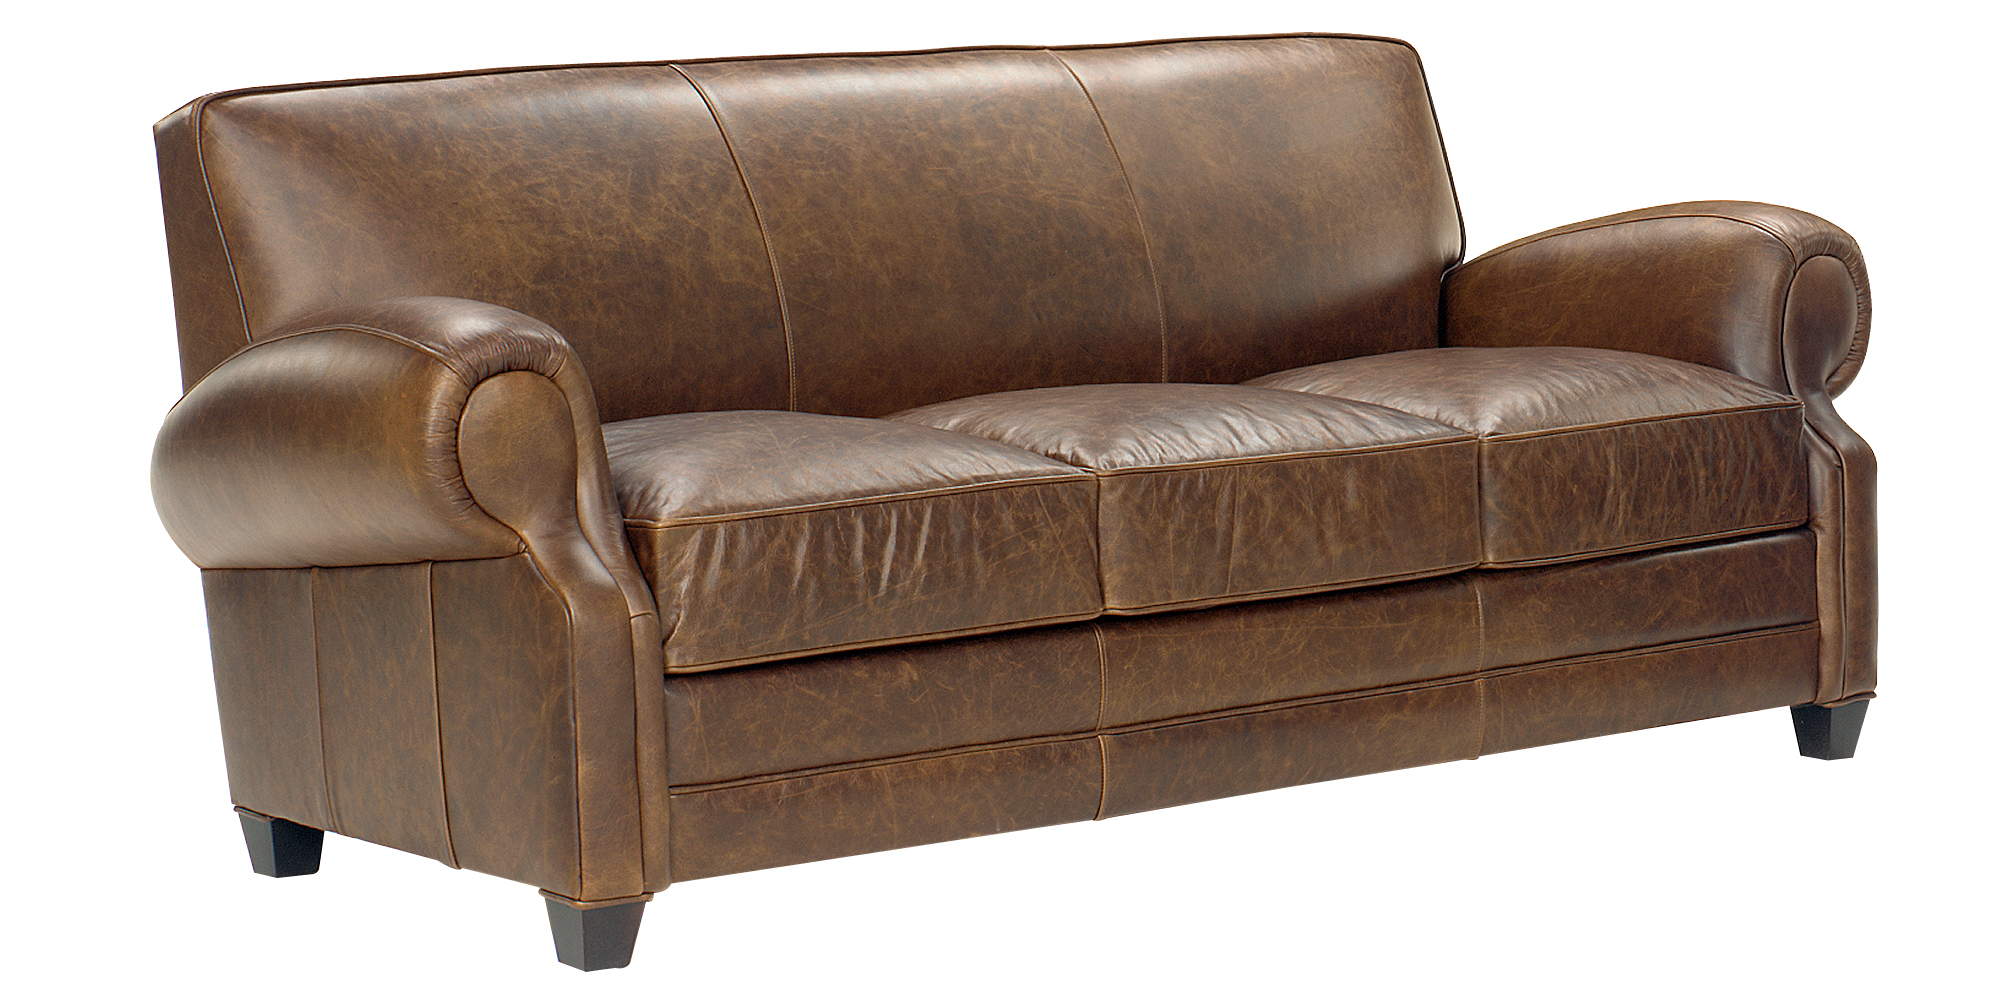 Luxurious High End Leather Sofa Collection